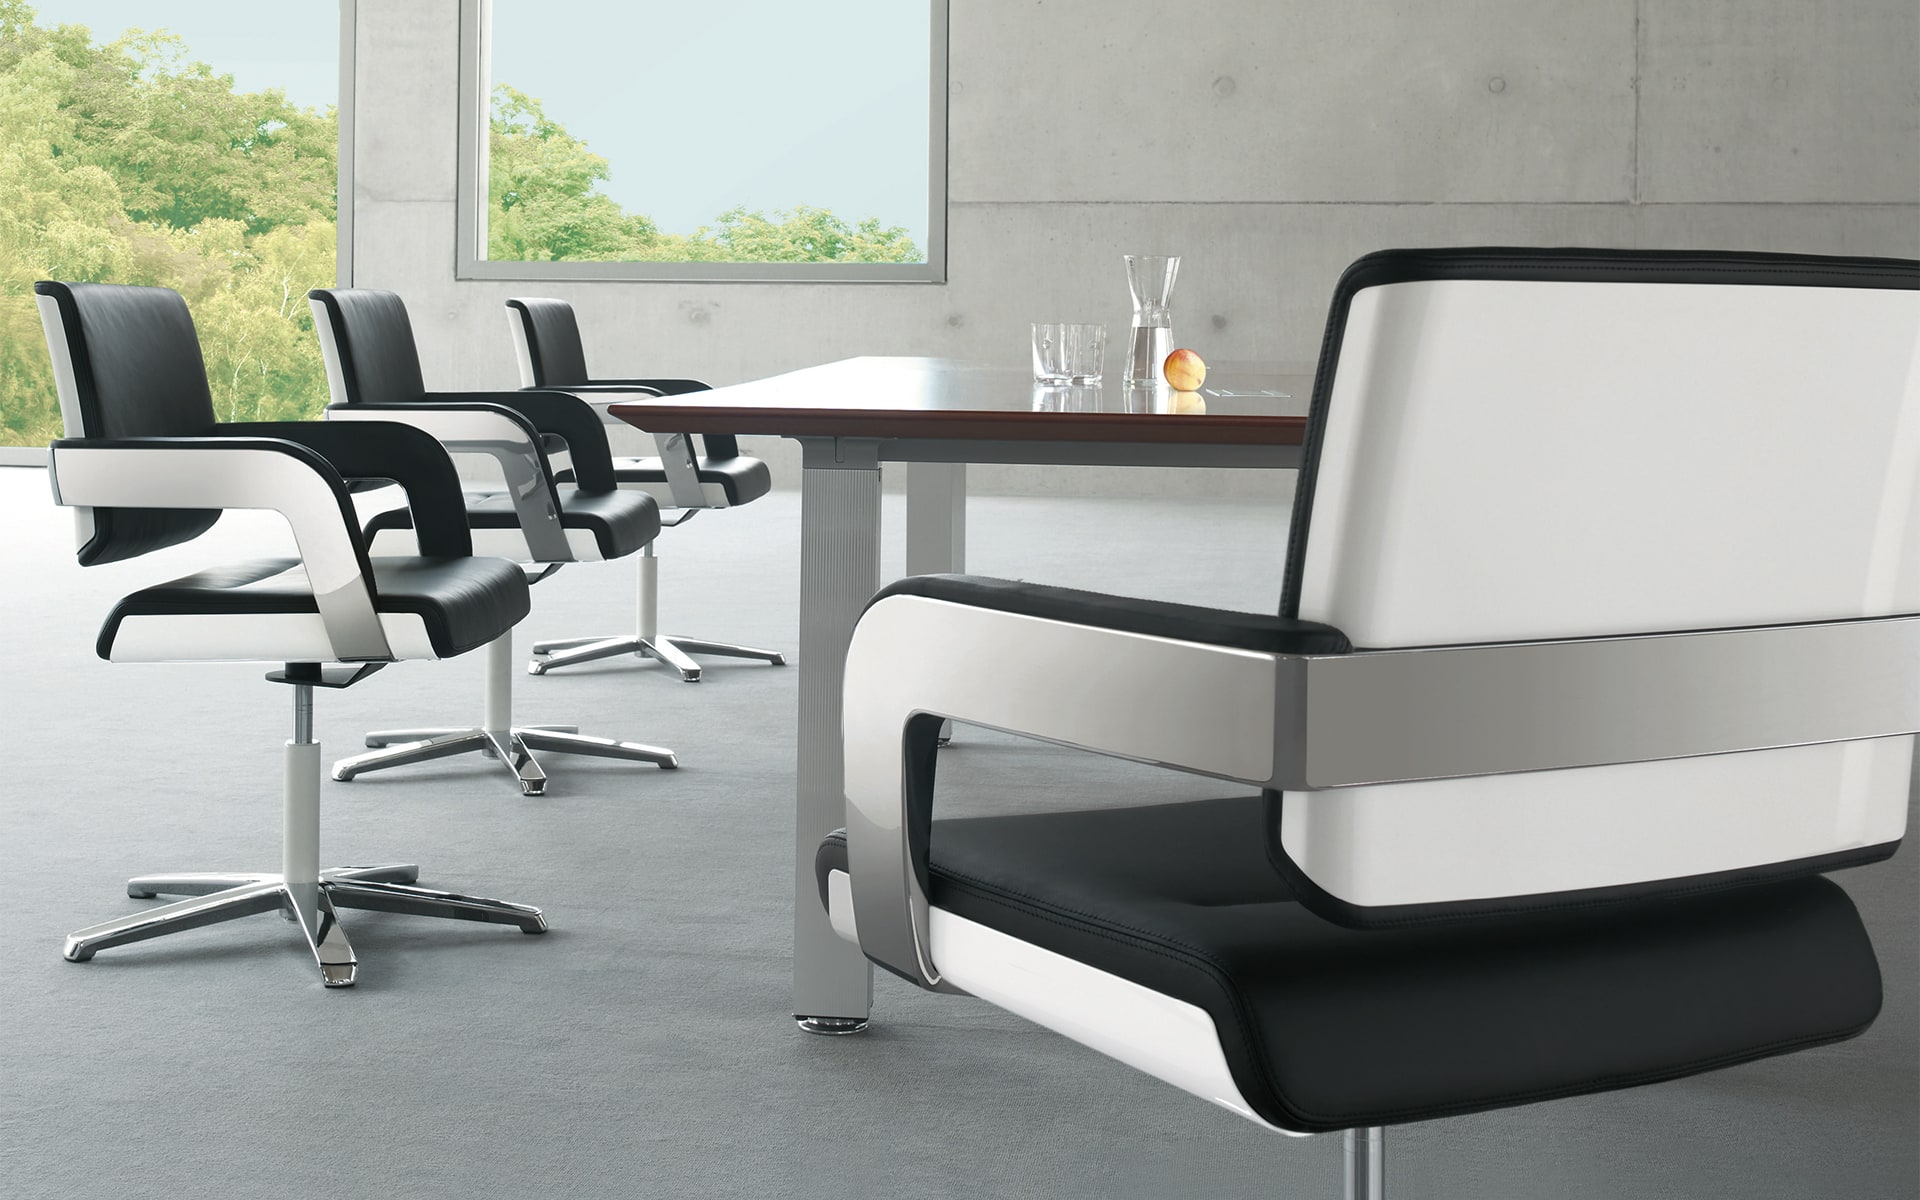 Black-and-white K+N Charta conference chairs by ITO Design in conference hall with large windows